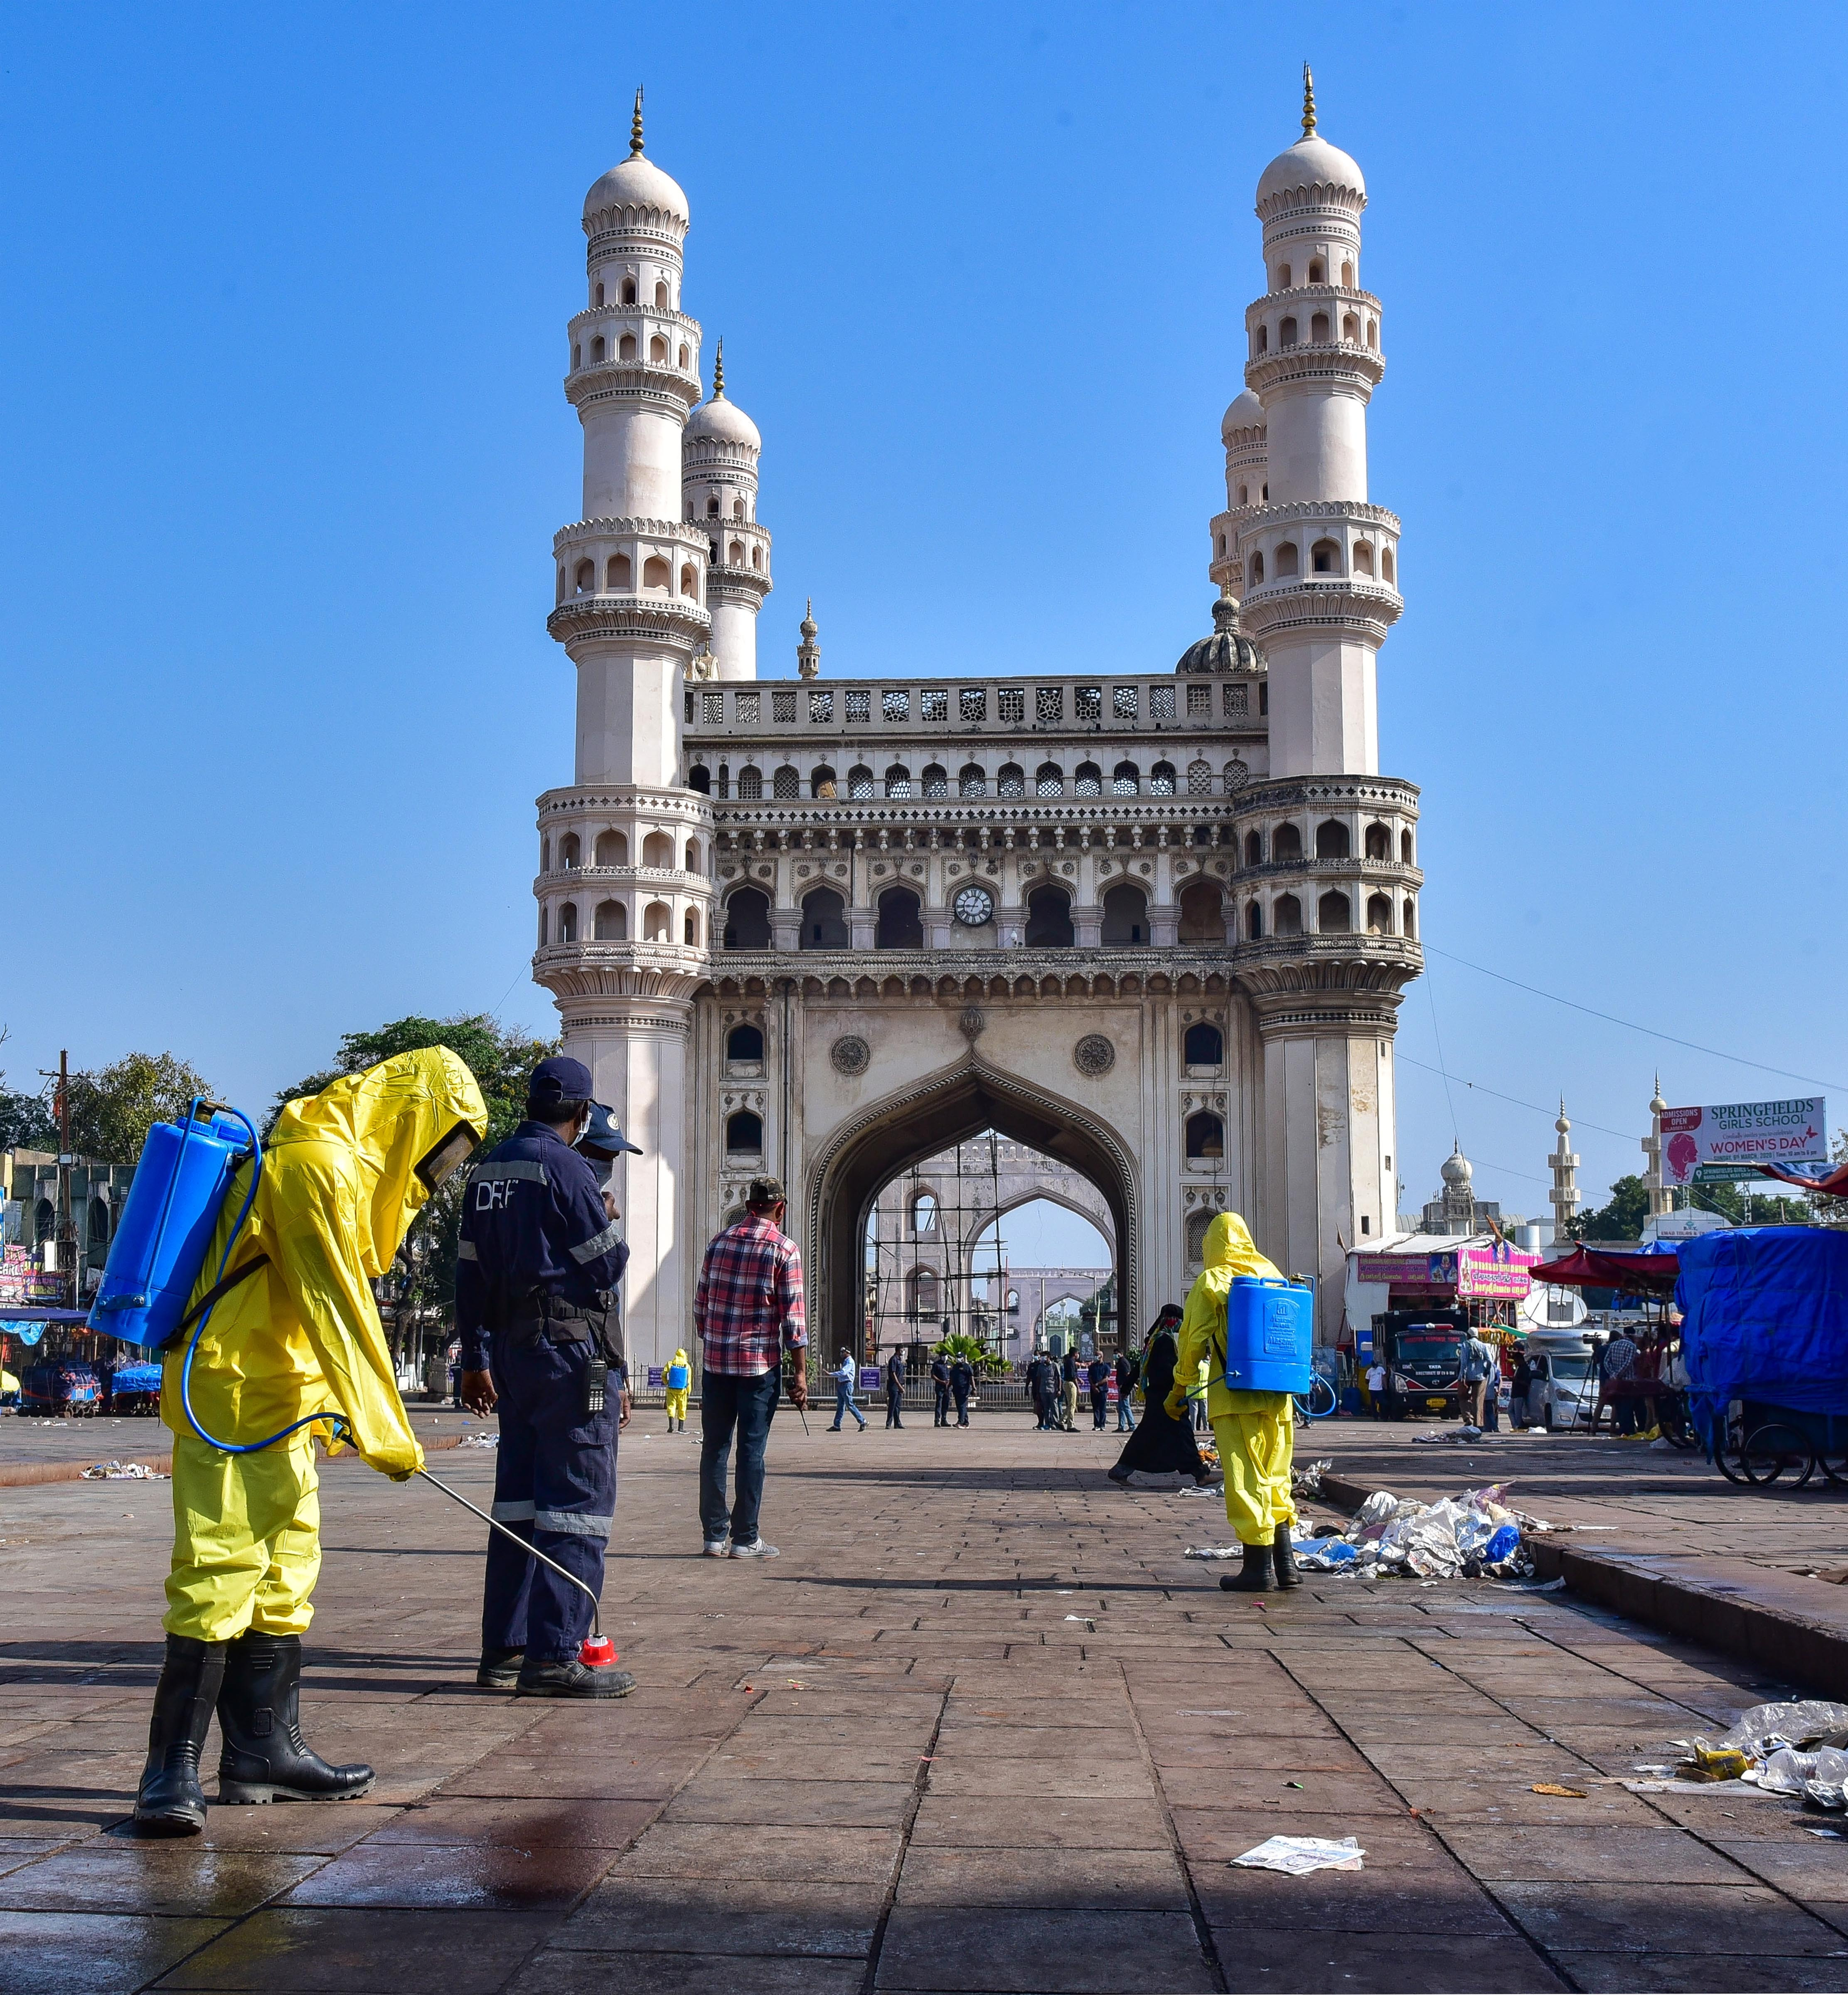 Workers disinfectant an area near the historic Charminar during Janata curfew in the wake of coronavirus pandemic, in Hyderabad, Sunday, March 22, 2020